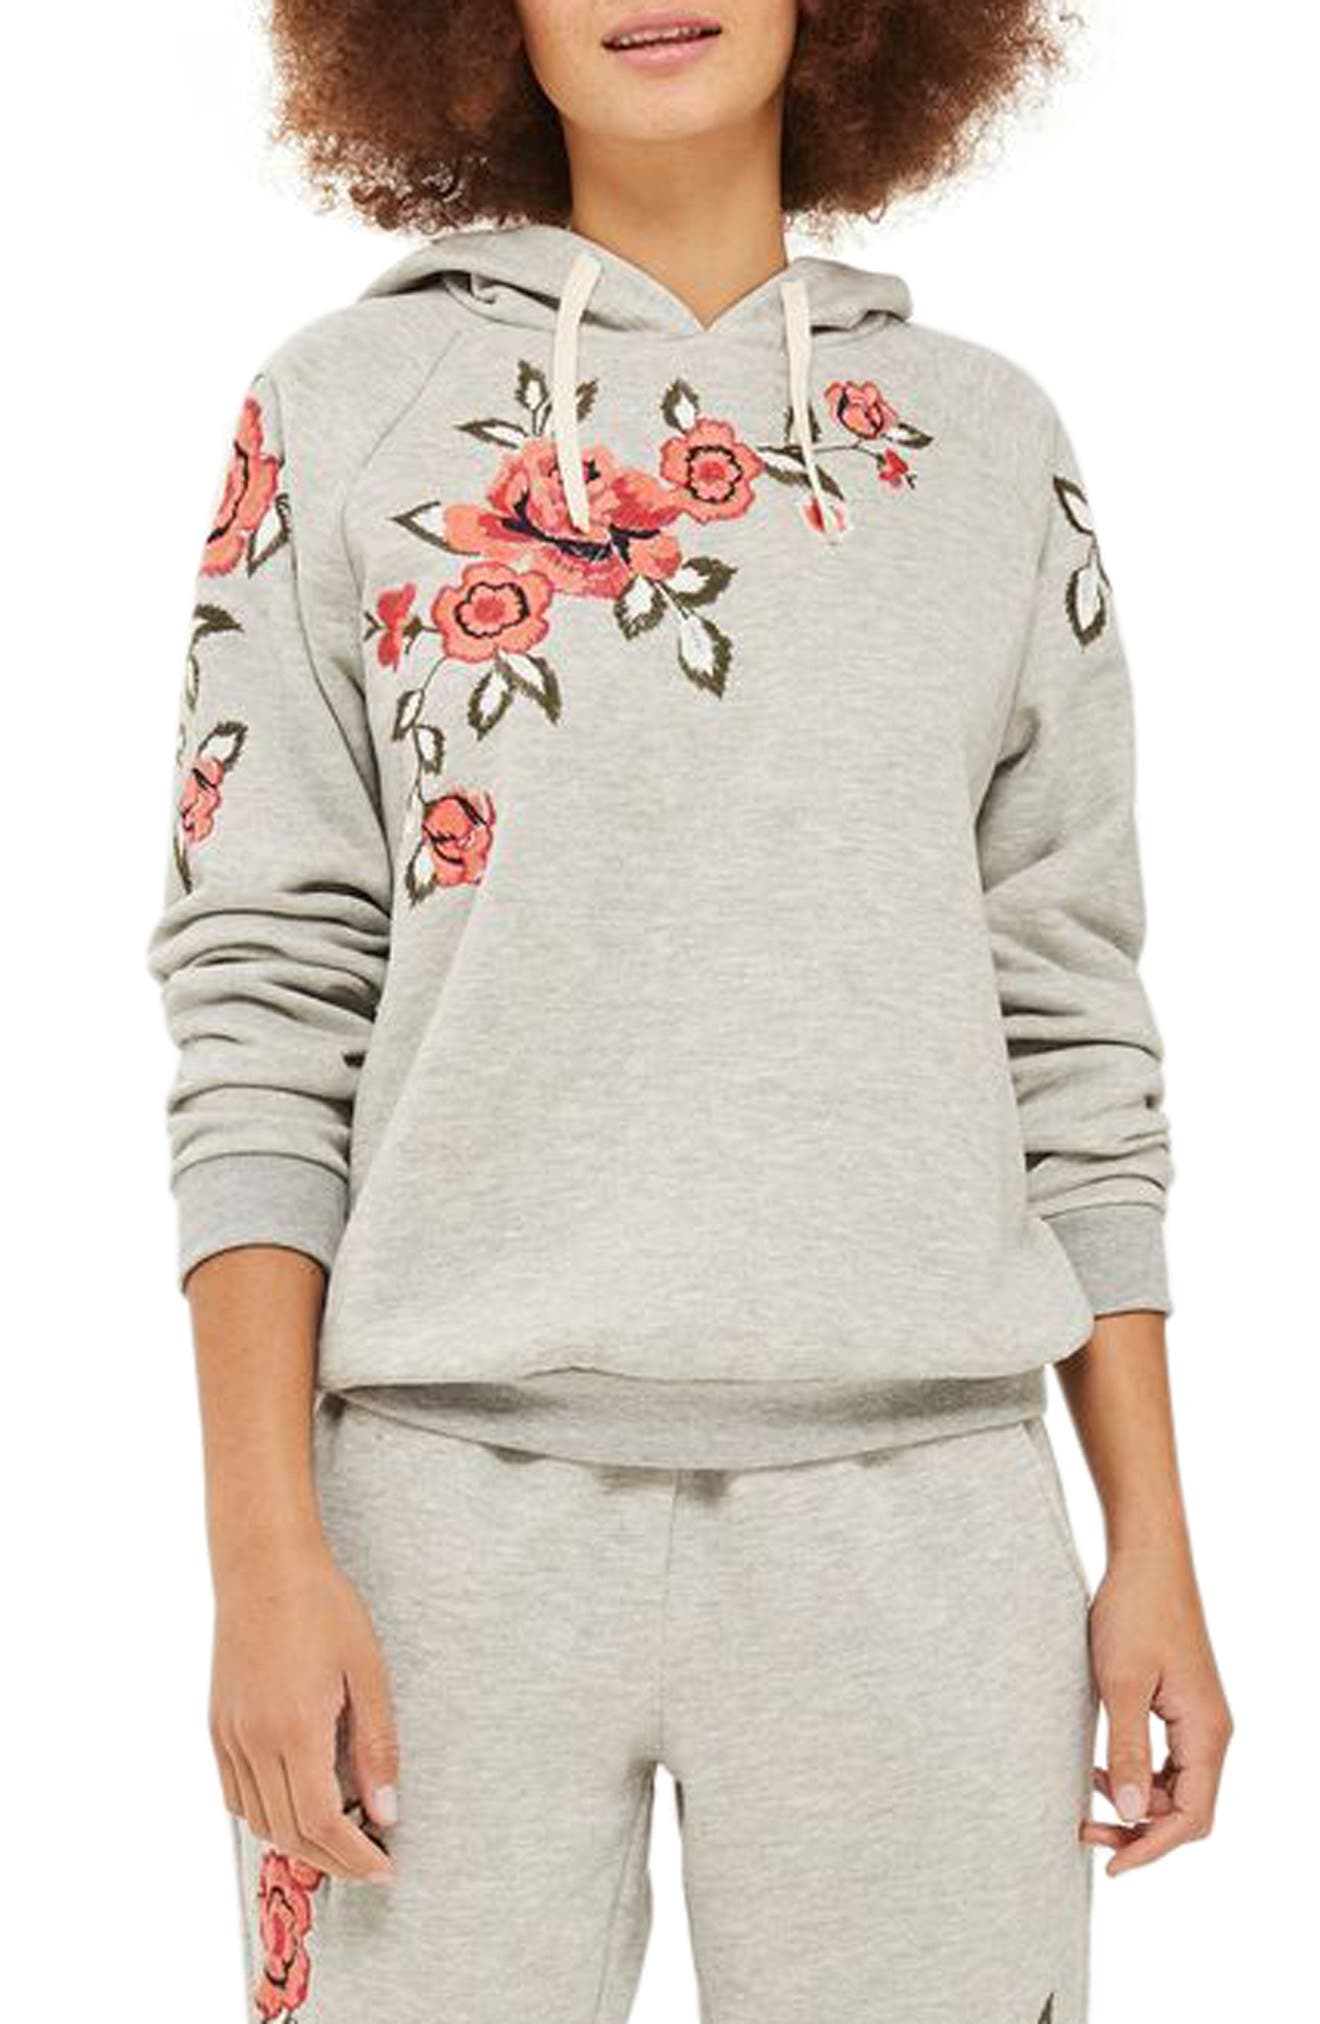 Floral Embroidered Hoodie,                             Main thumbnail 1, color,                             Grey Multi